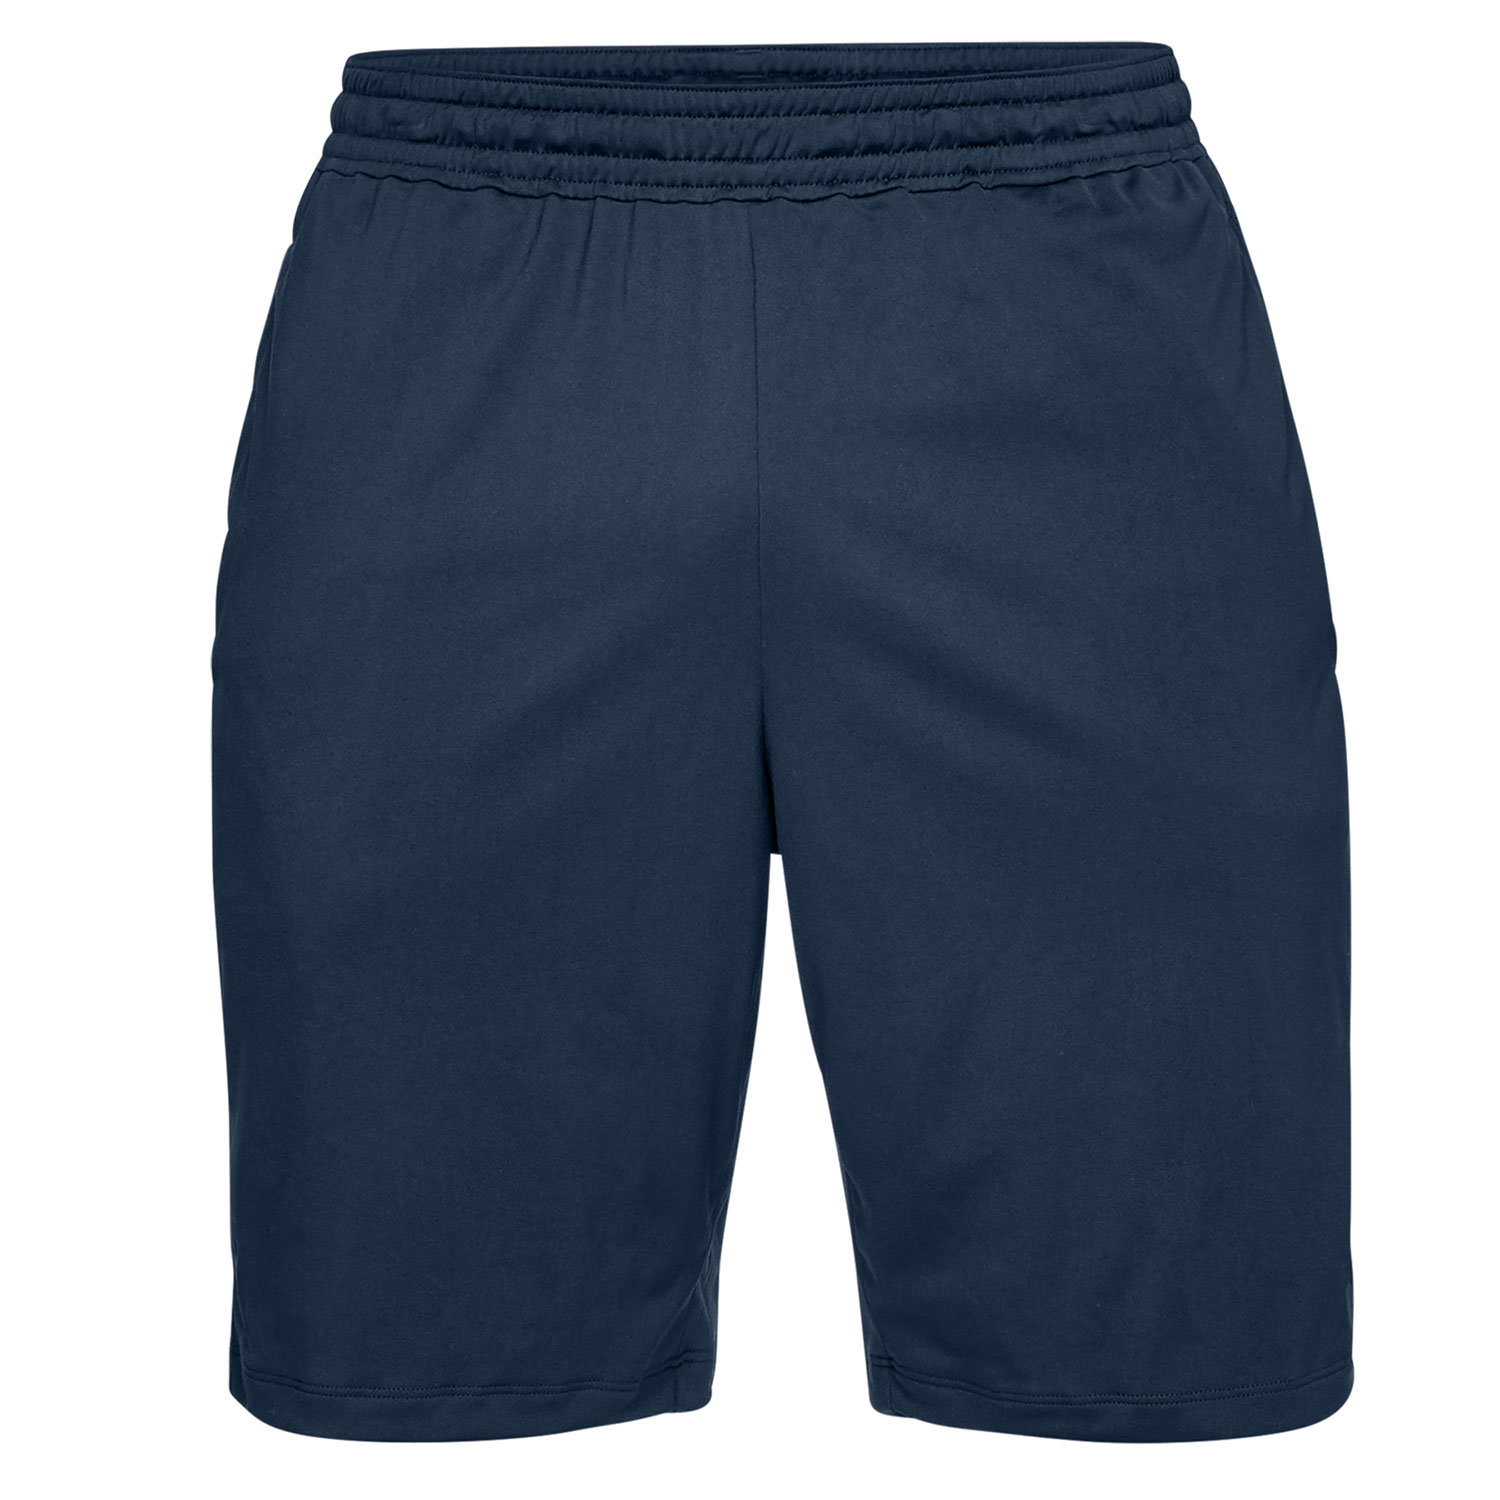 Under Armour MK-1 Shorts